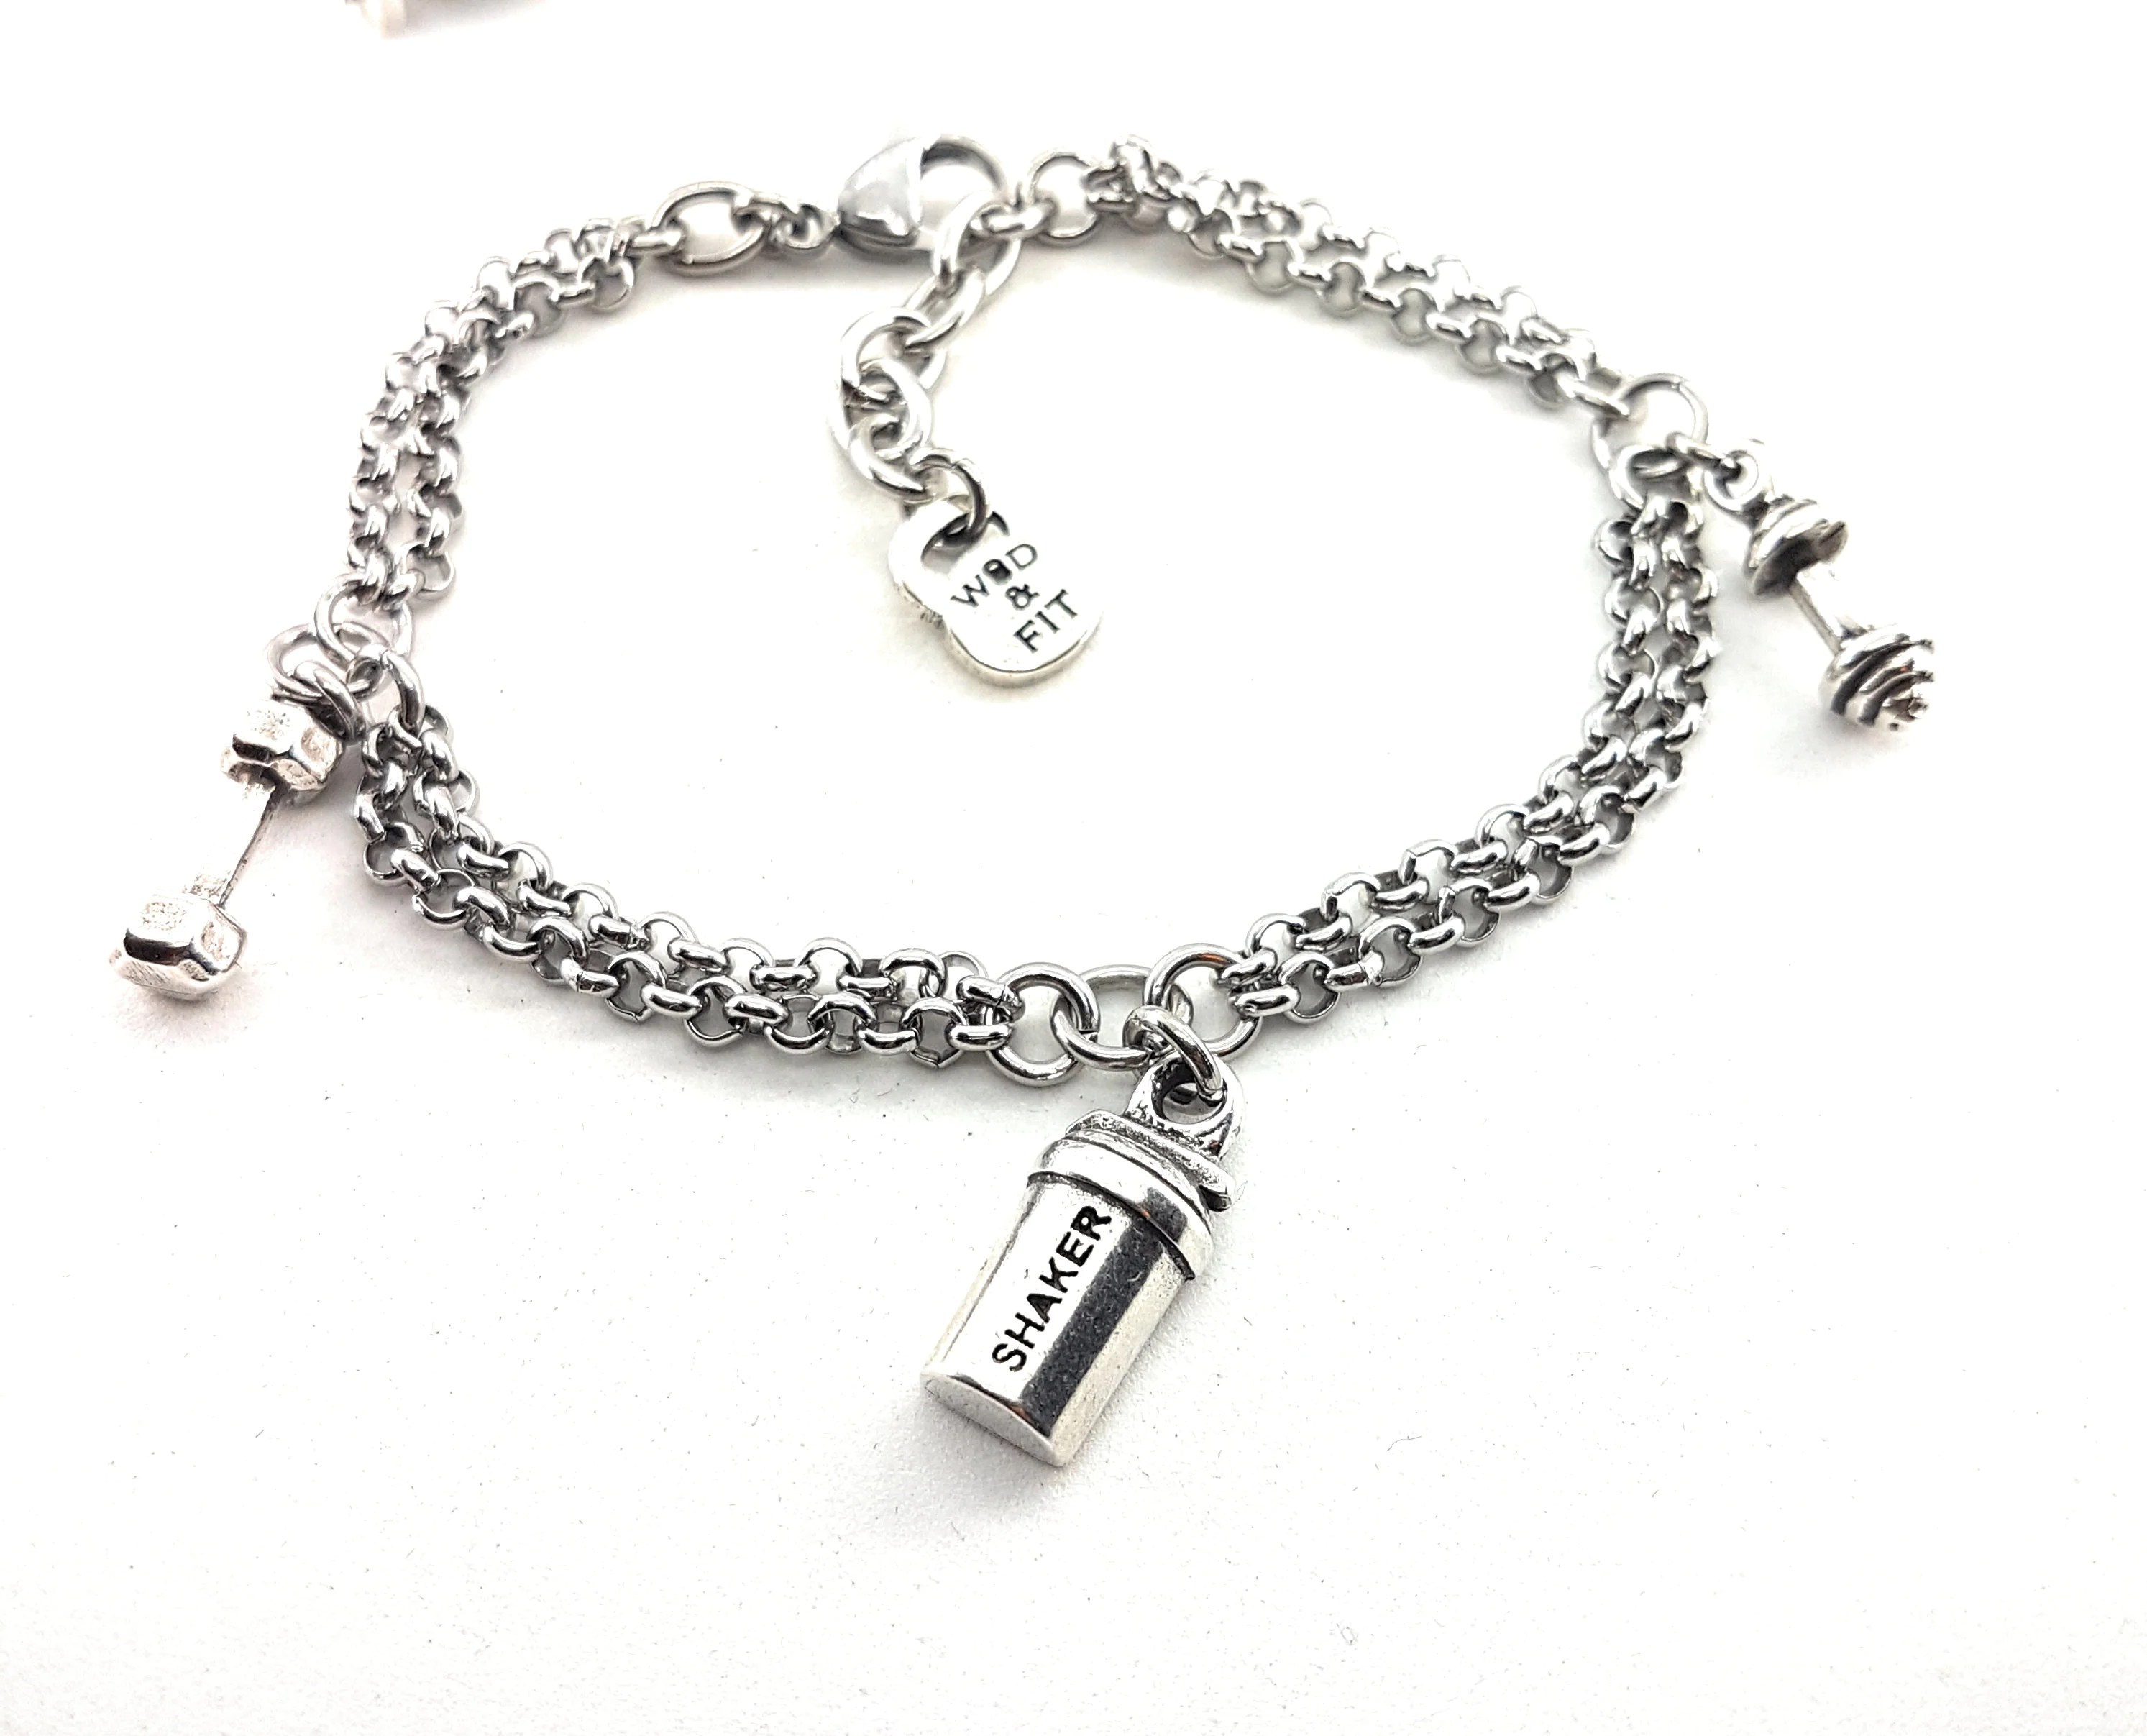 Bracelet Metcon Barbell Amp Dumbbell Workout In Stainless